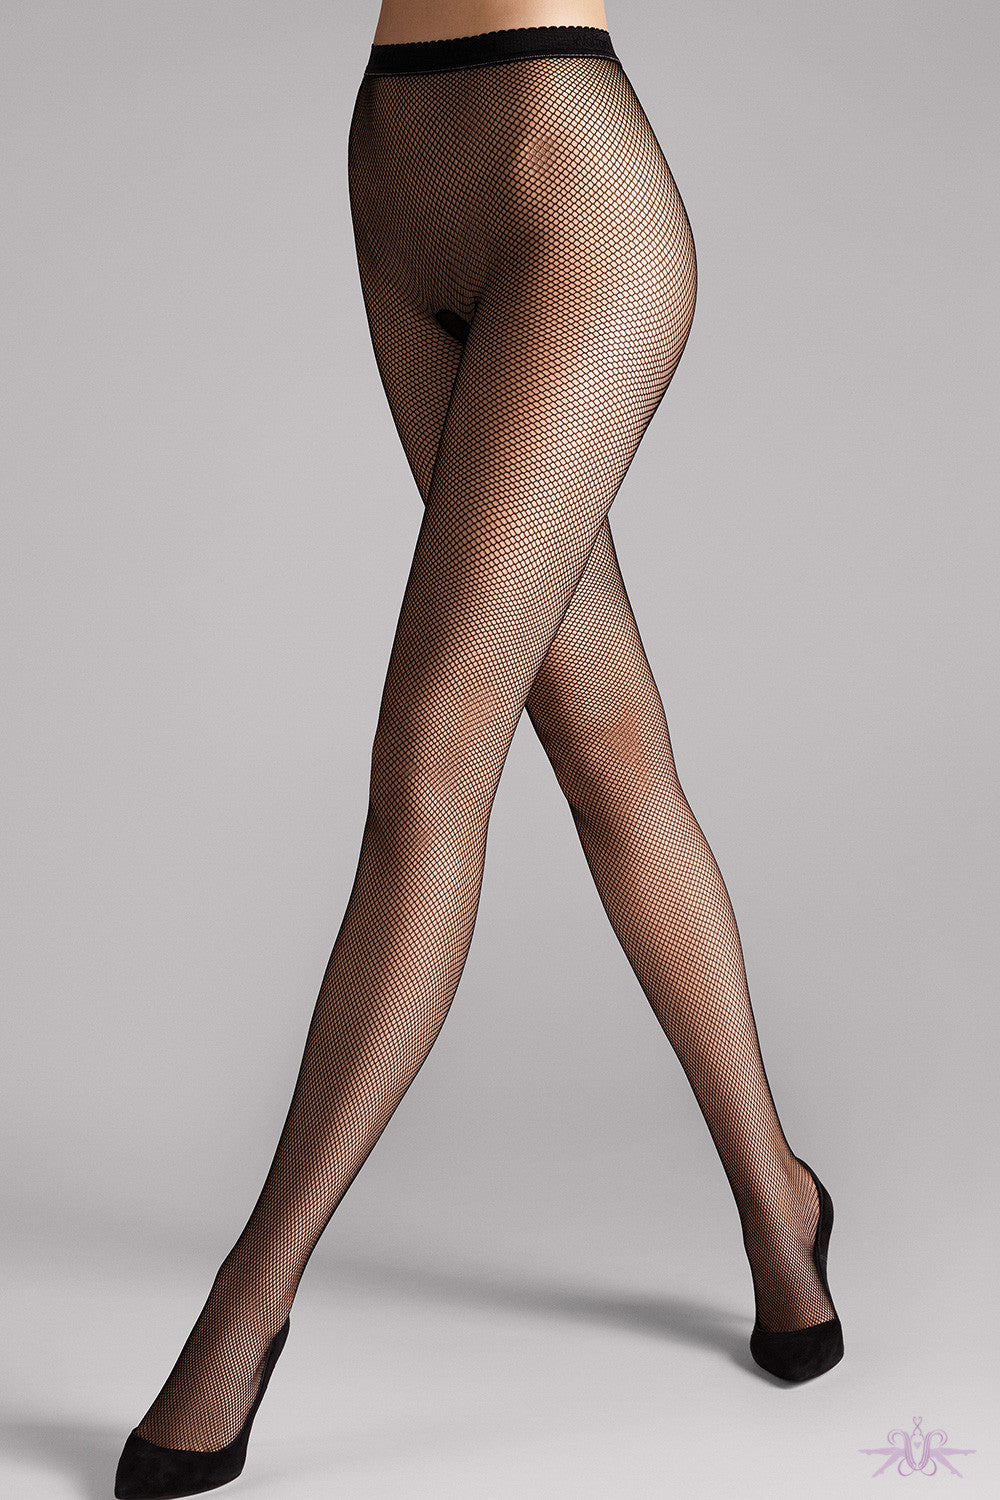 Wolford Twenties Fishnet Tights - Mayfair Stockings